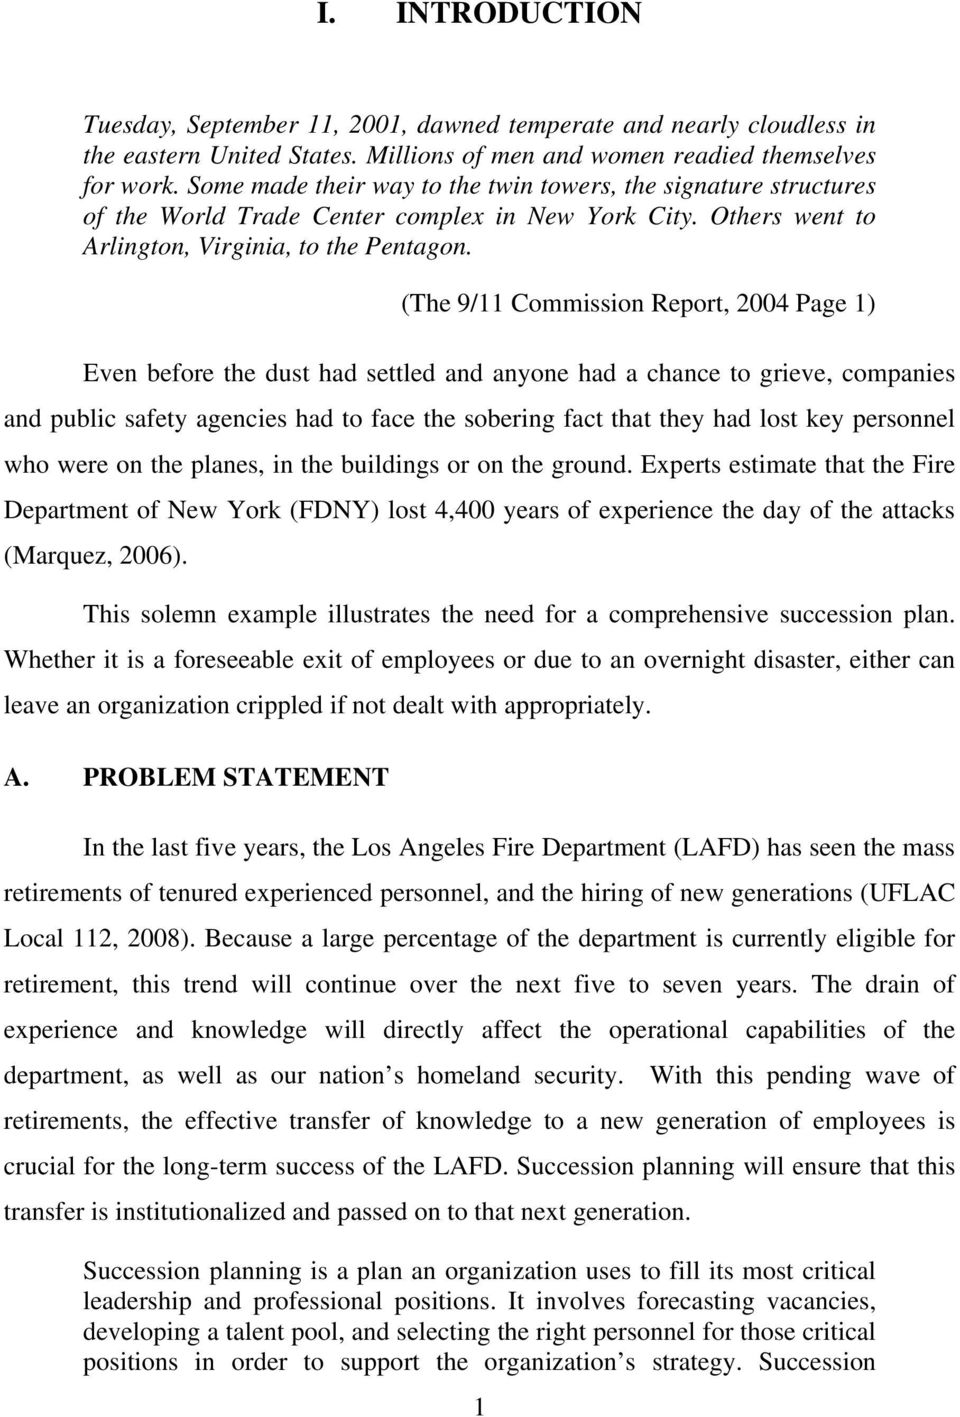 (The 9/11 Commission Report, 2004 Page 1) Even before the dust had settled and anyone had a chance to grieve, companies and public safety agencies had to face the sobering fact that they had lost key